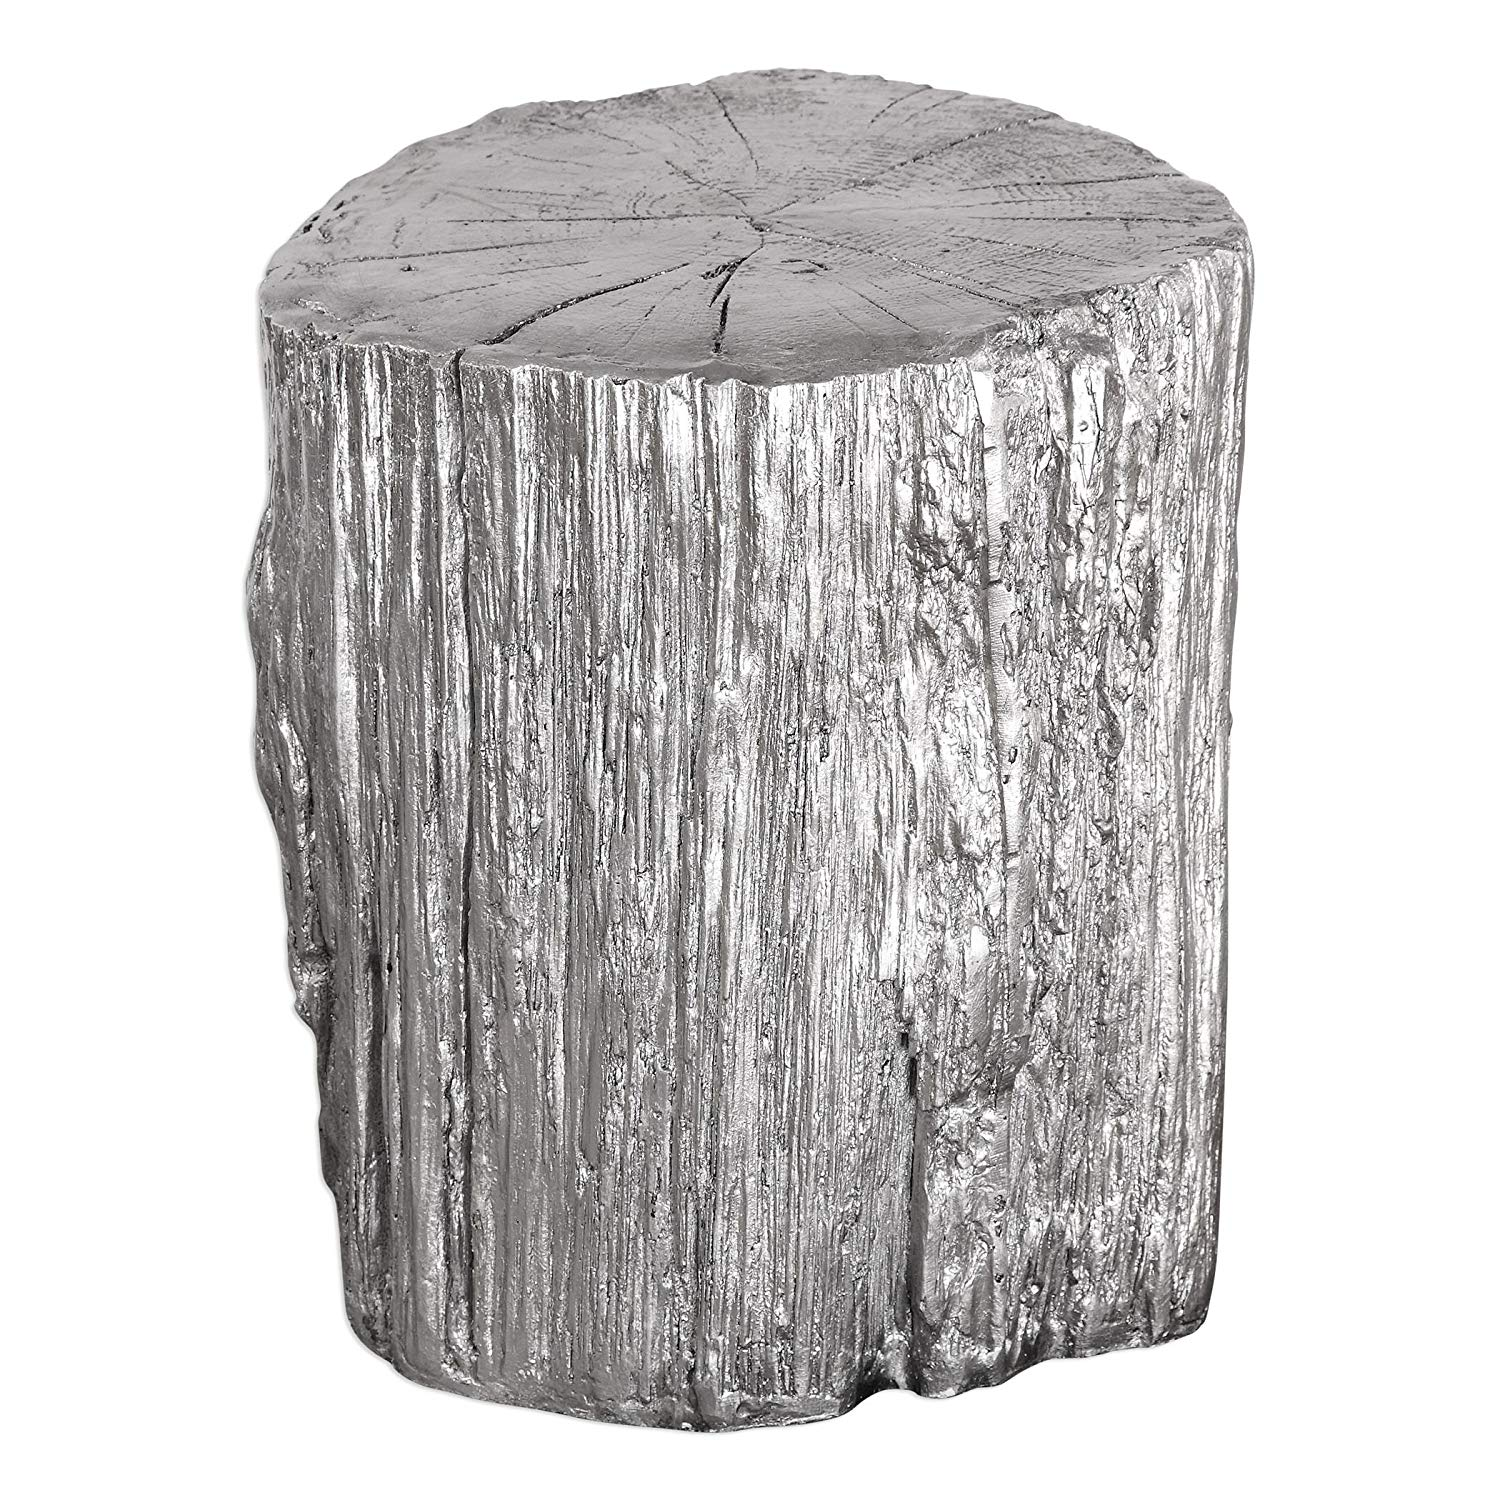 elegant silver tree stump accent table pedestal round tall faux bois trunk naturalist kitchen dining used drum throne square mosaic distressed wood tables side lamps plus cream